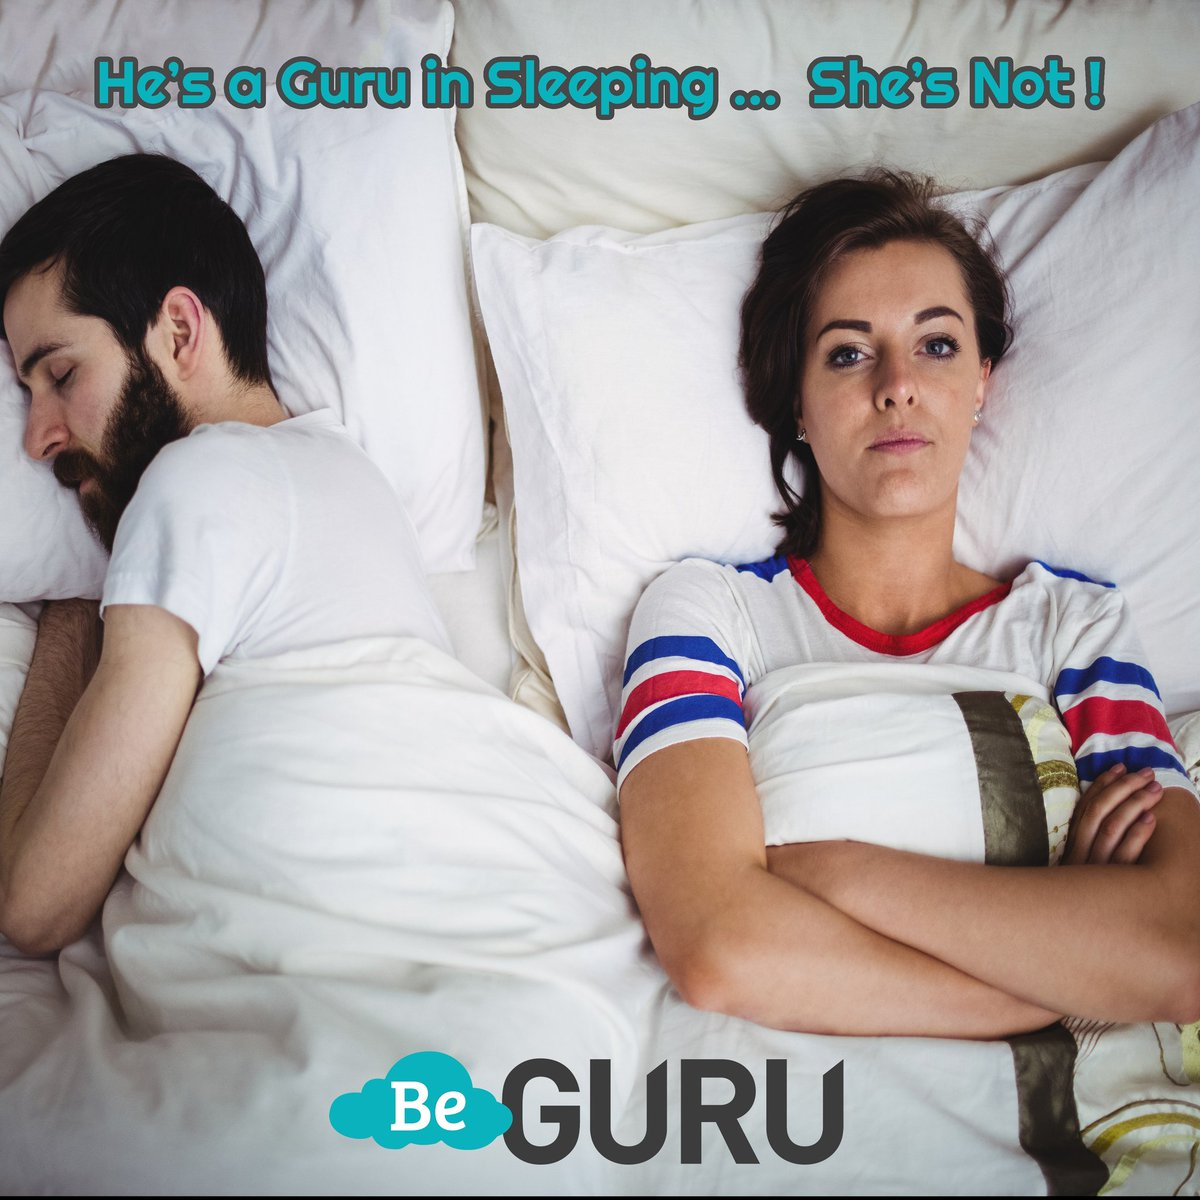 We are all gurus and beginners in some way. 👨‍🏫👩‍🏫 Join us and share your knowledge! (Link in the bio)  #beguru #elearning #livelessons #teaching #onlineclassroom #shareyourknowledge #platform  #community #sociallearning #business #lifestyle #marketing #yoga #fitness #cooking